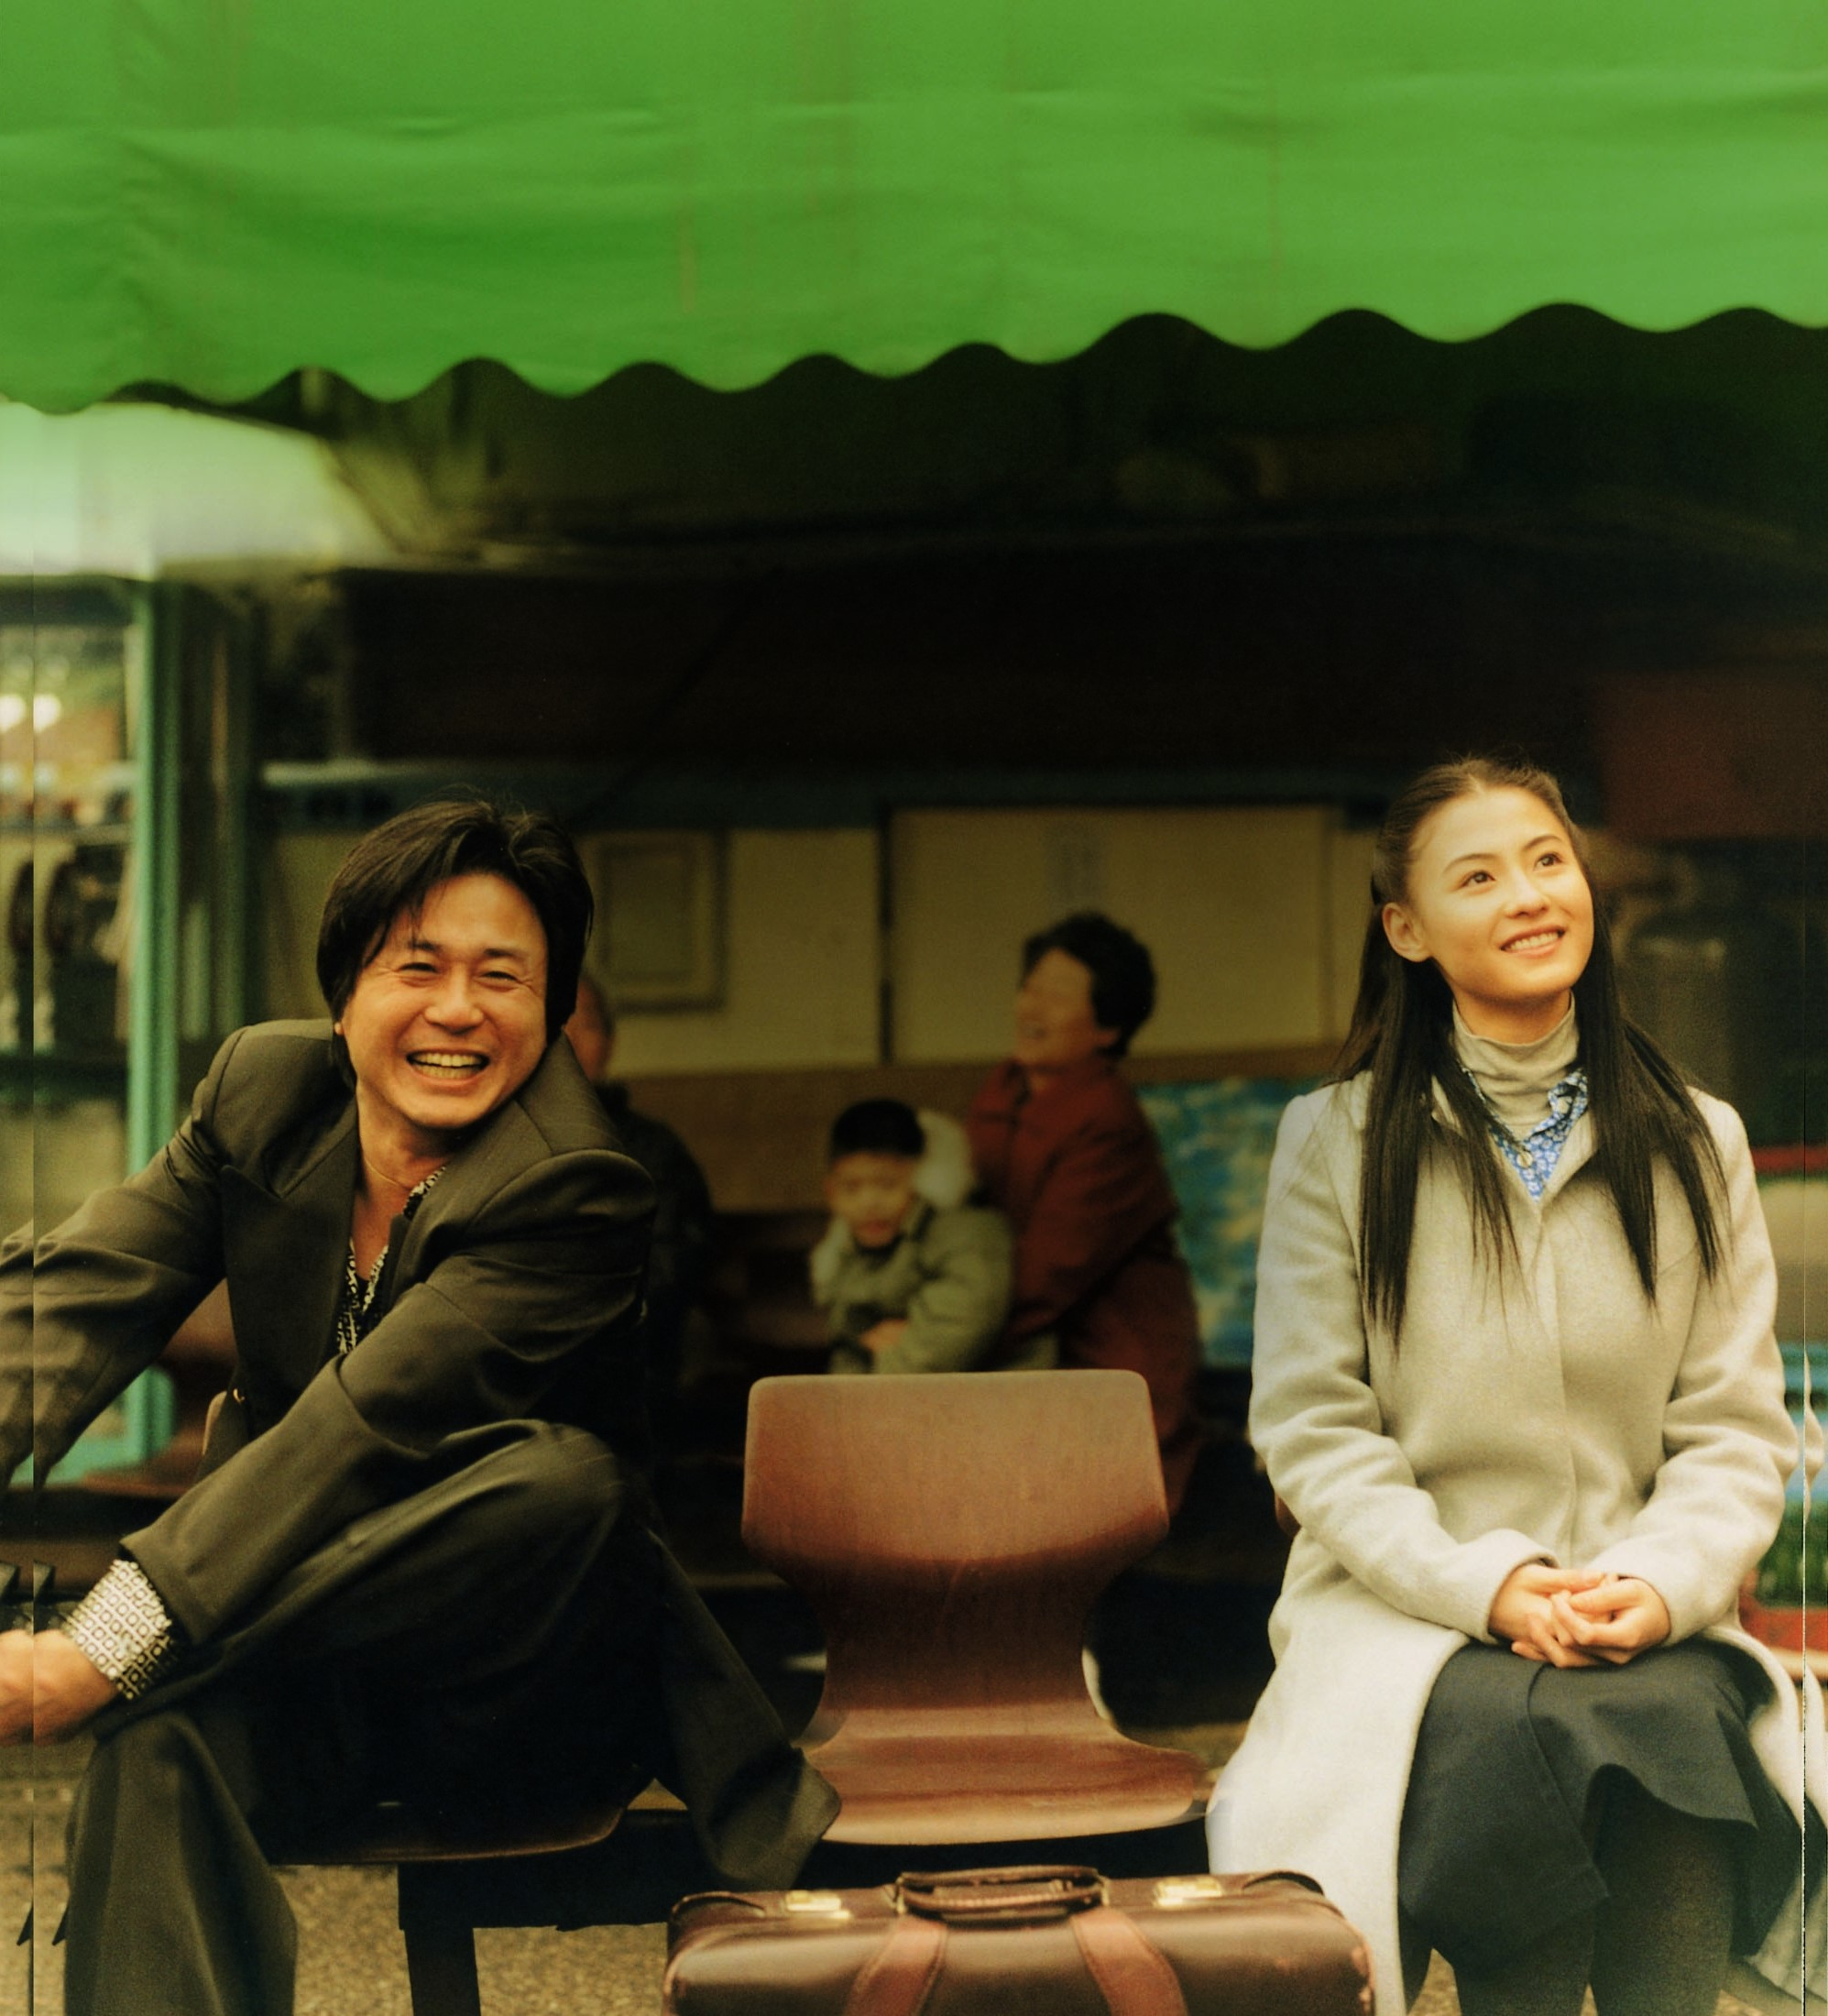 Cecilia Cheung and Choi Min-sik in Failan (2001)